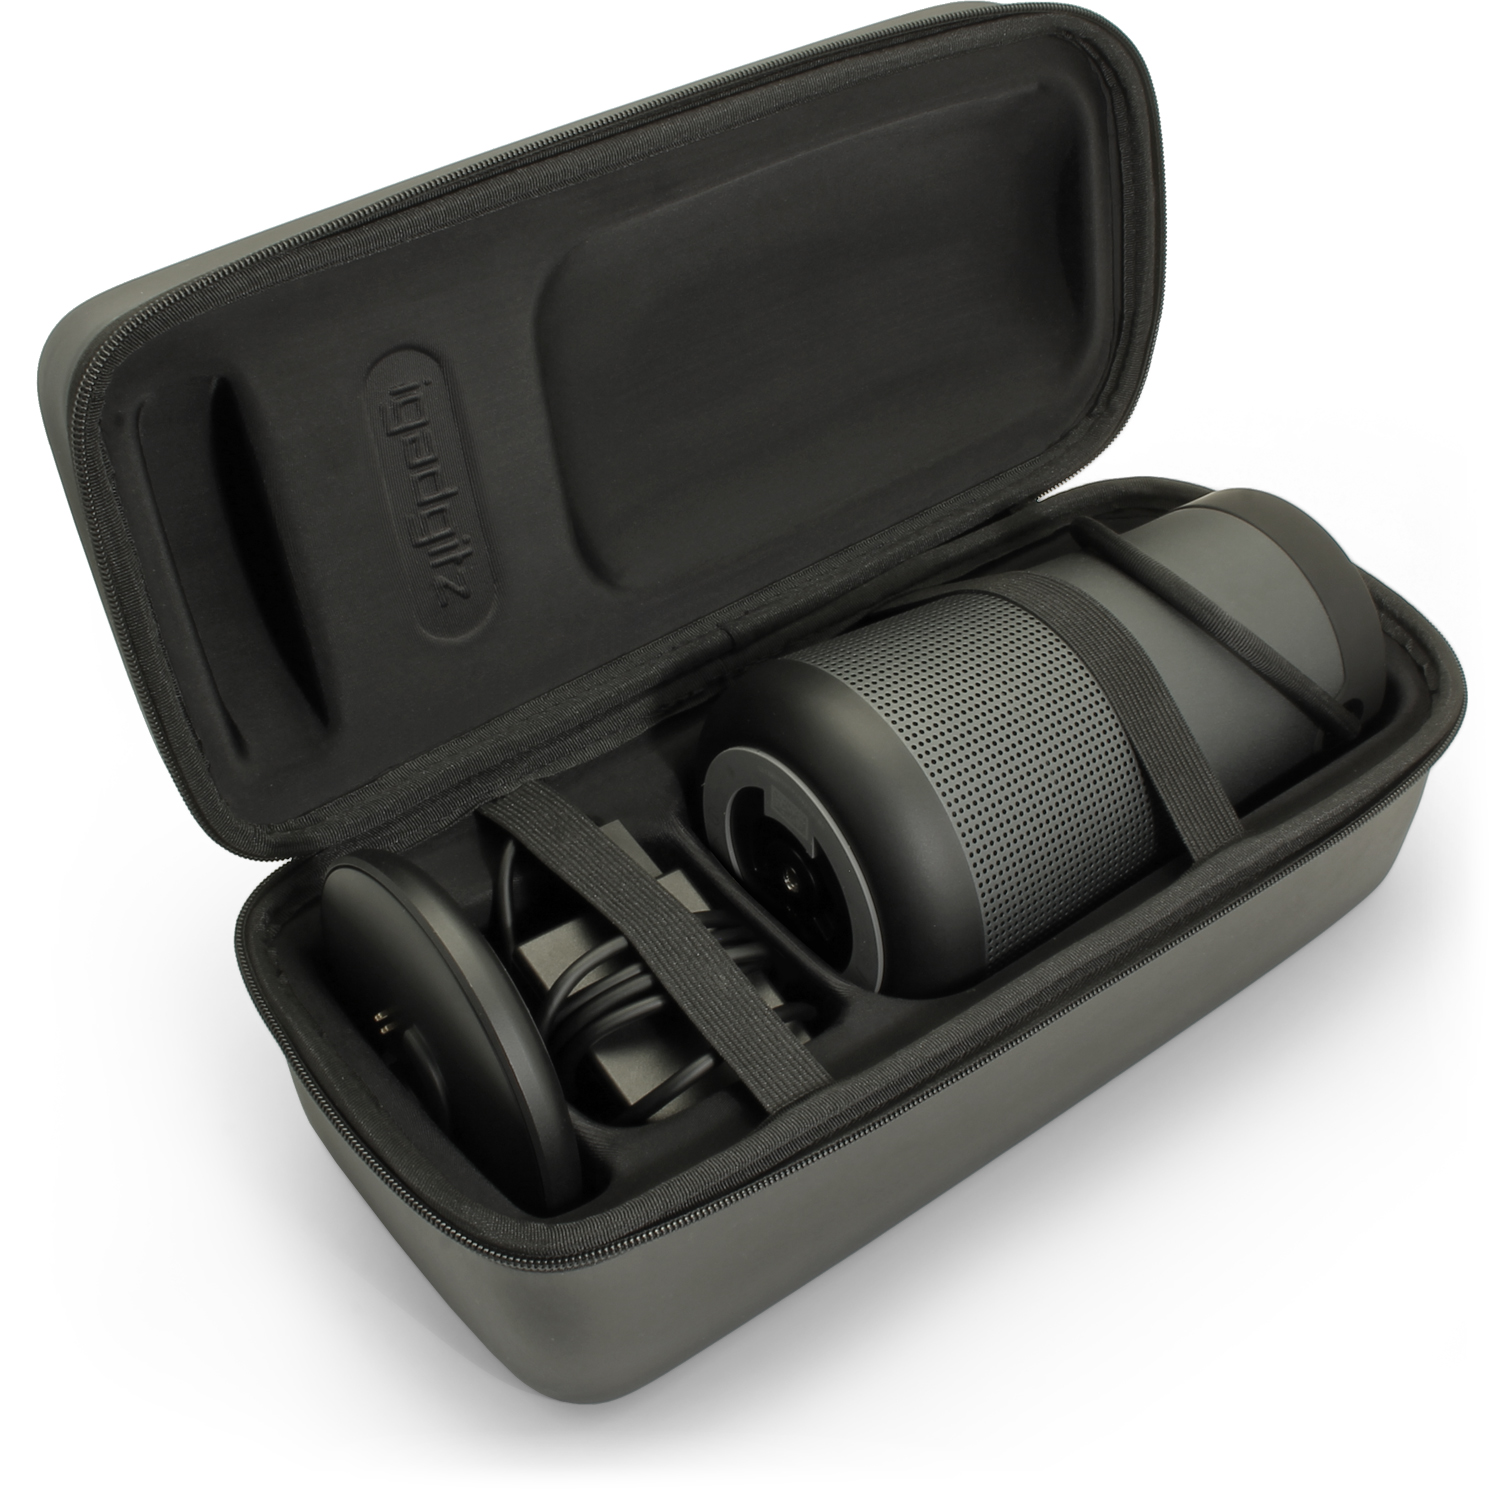 Details about Black EVA Carrying Hard Case for Bose SoundLink Revolve Plus  Bluetooth Speaker